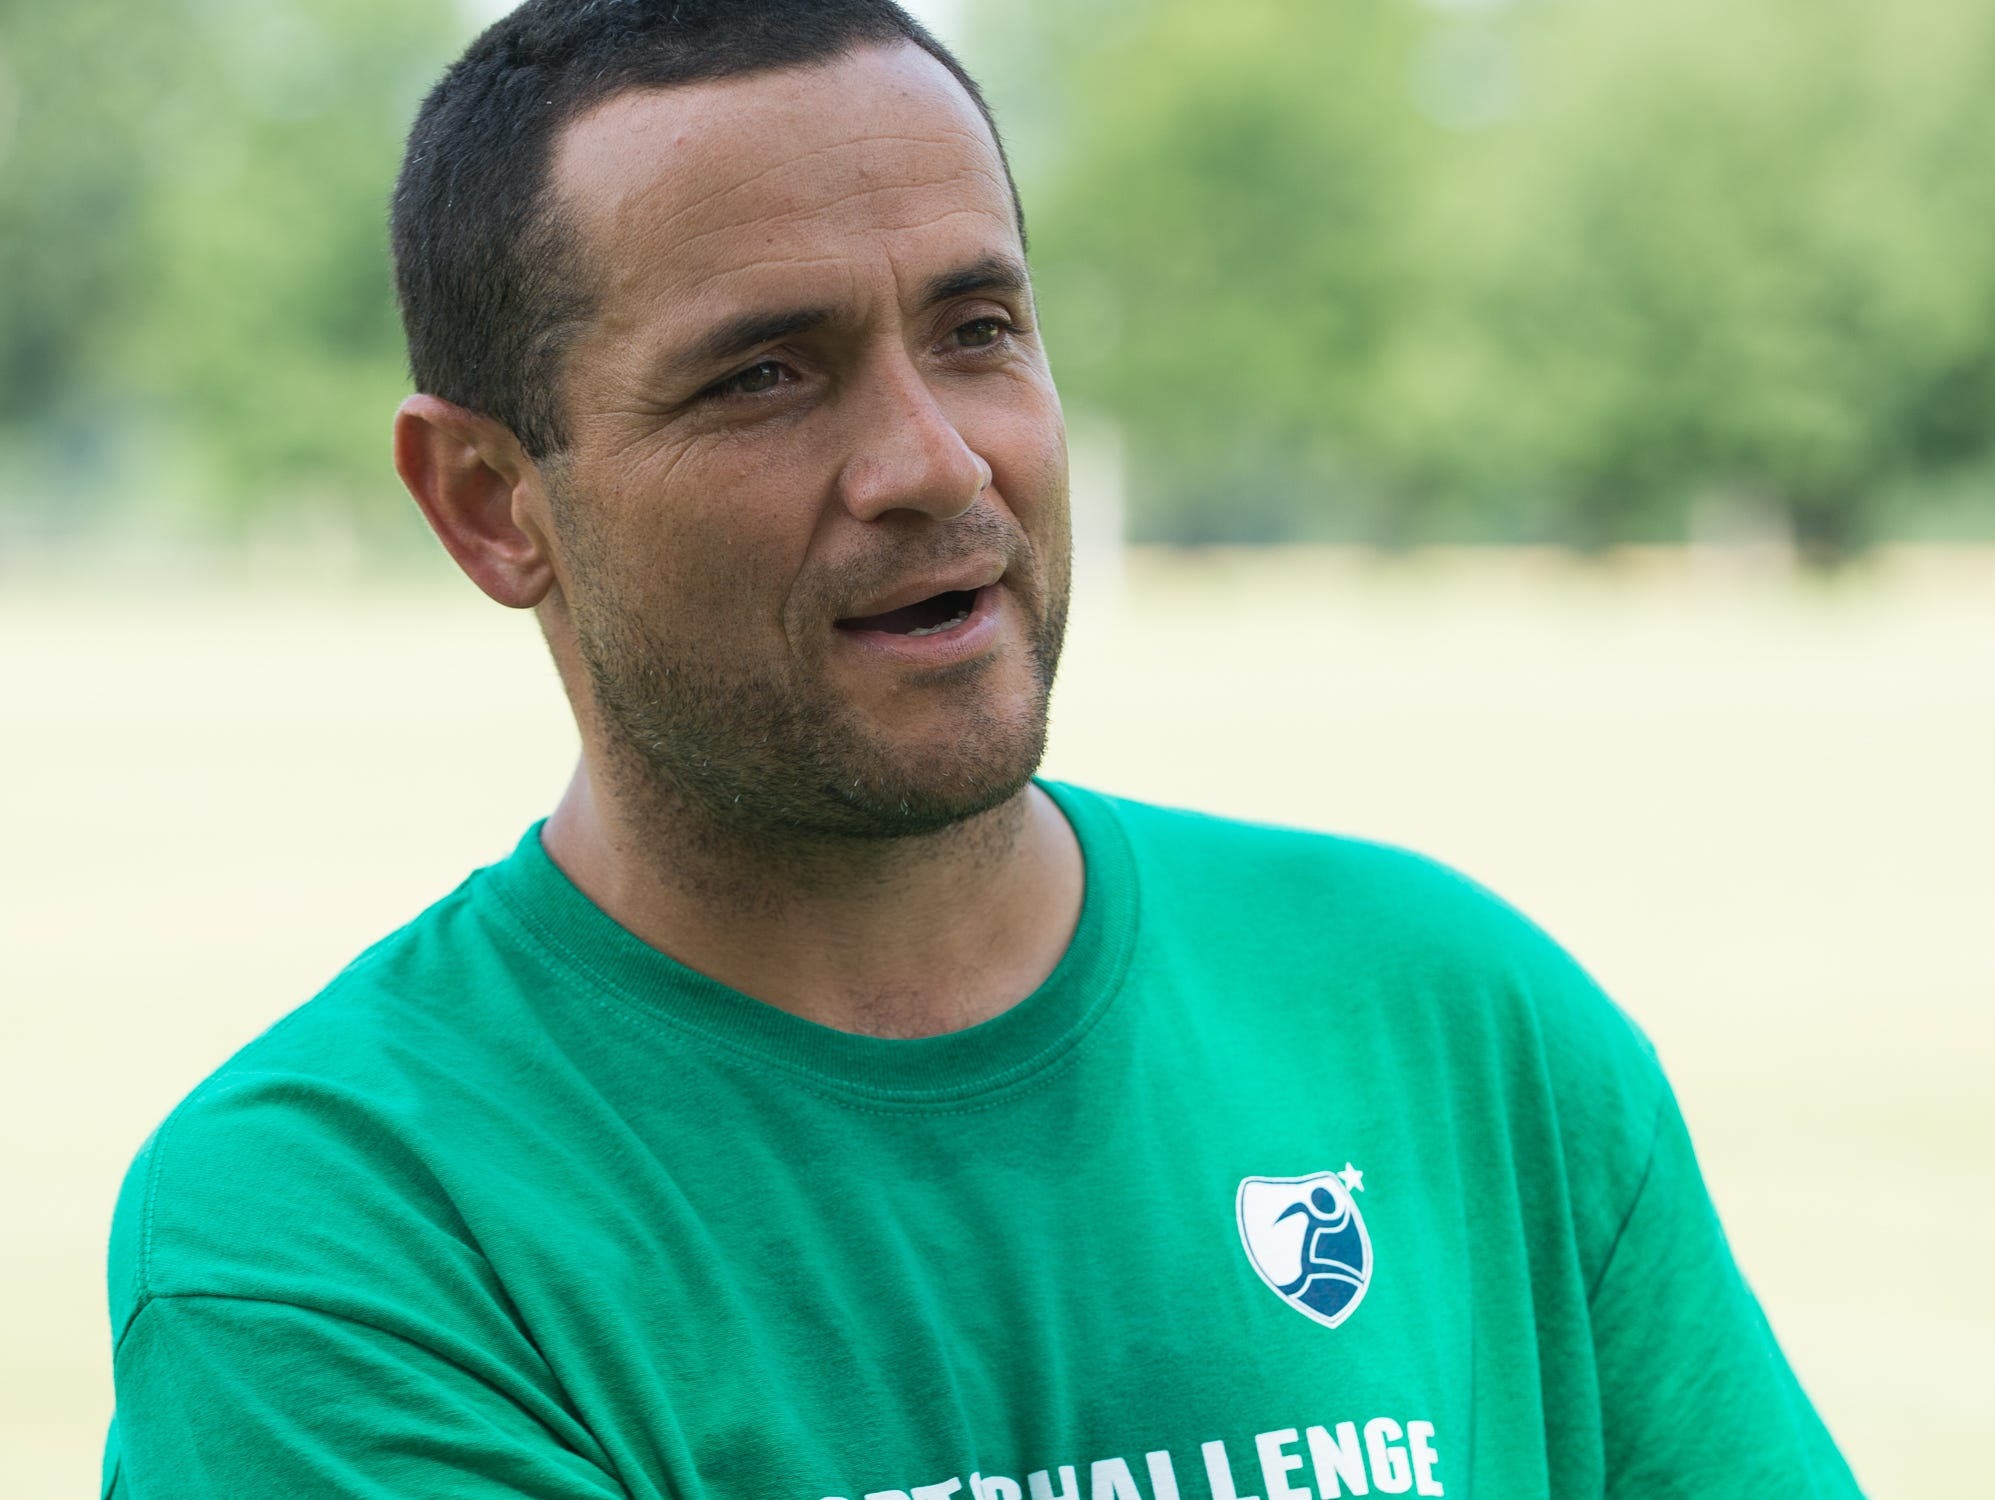 Soccer coach Jesse Gonzalez of San Diego, CA., talks about coaching at the Strive Sports Challenge at St. Andrew's School in Middletown, Del,.